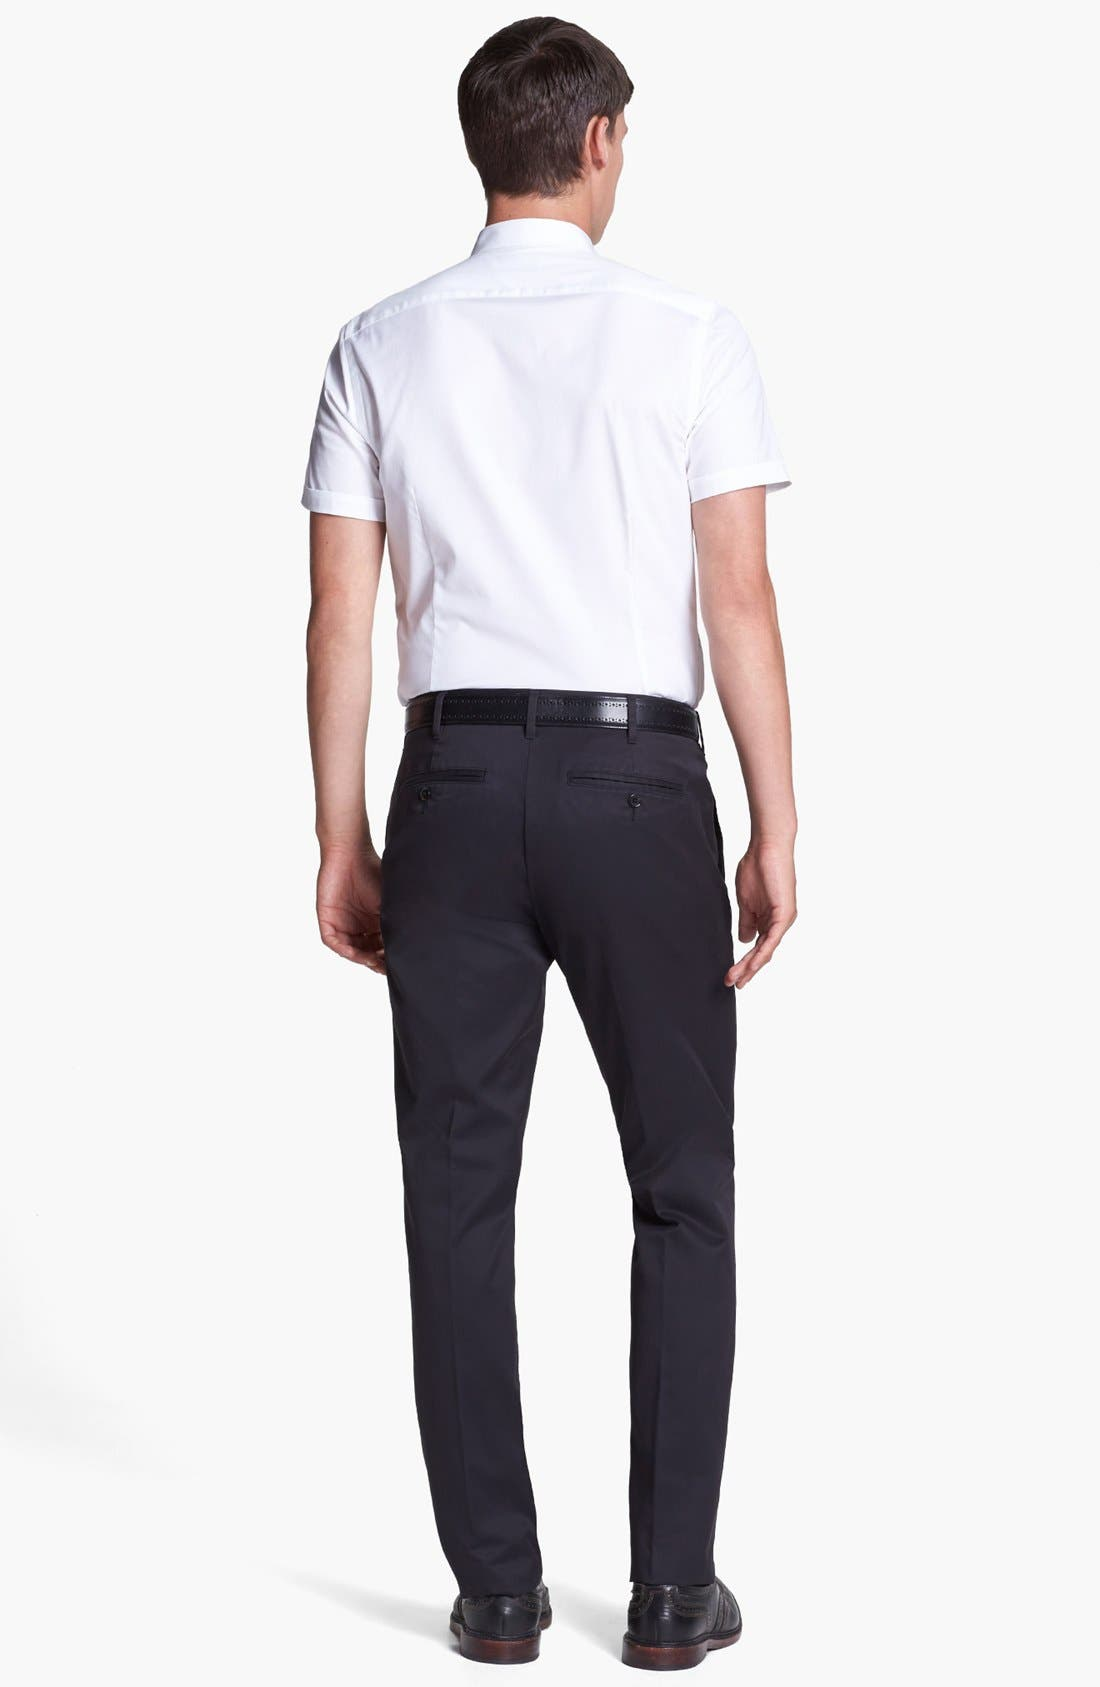 'Weekday Warriors' Non-Iron Slim Fit Cotton Chinos,                             Alternate thumbnail 4, color,                             001